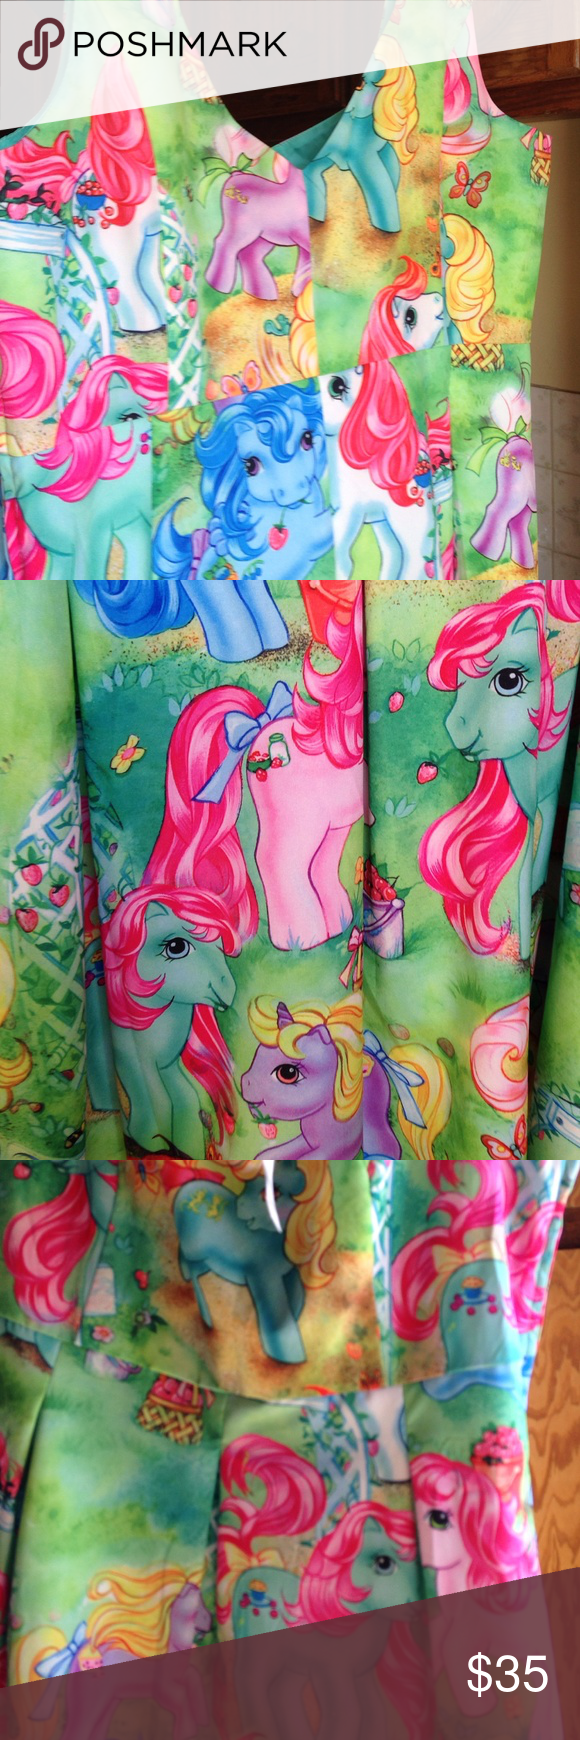 (REPOSHING) NWT My Little Pony Dress (REPOSHING) NWT My Little Pony Dress. I Bought Medium but they realized it was An XL. It's Way Too Big for Me. I'm Selling it for what I Bought it for. $35. There is A Slight Musty Smell to it. That's the way I Received it. ***NO TRADES OR HOLDS*** Iron Fist Dresses